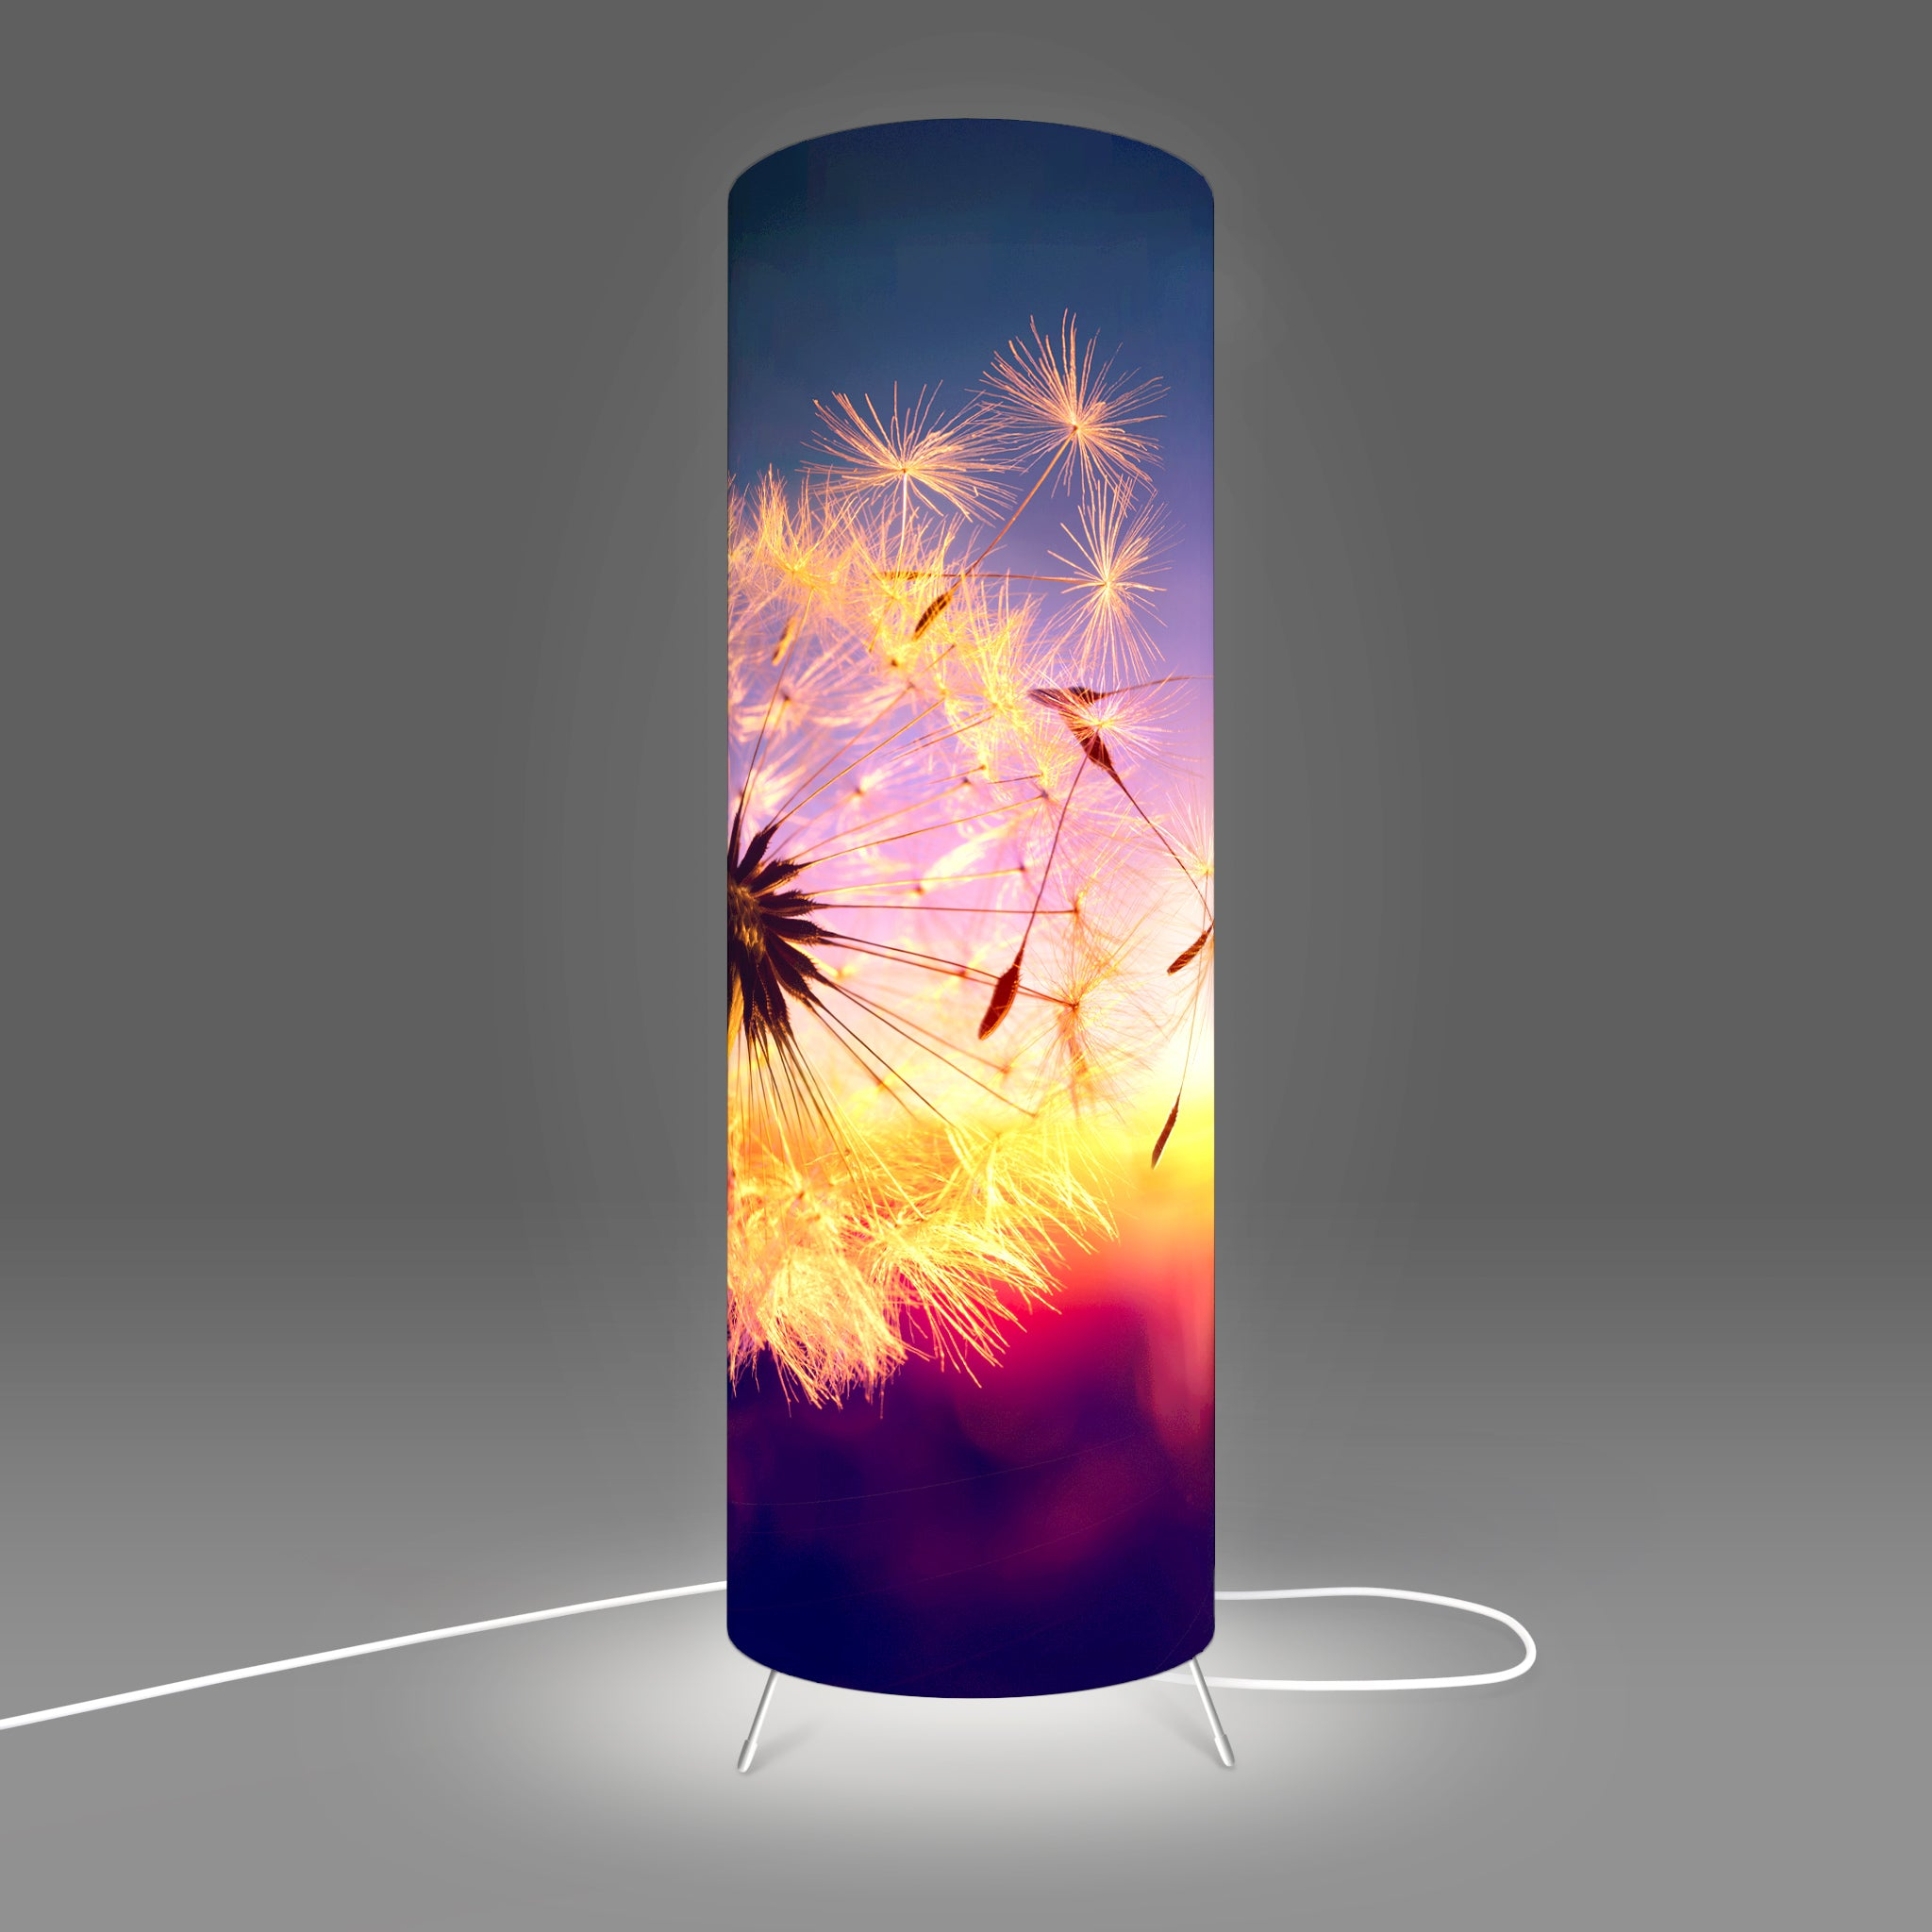 Modern Lamp designed by Fotbee with image of a puff ball at sunset